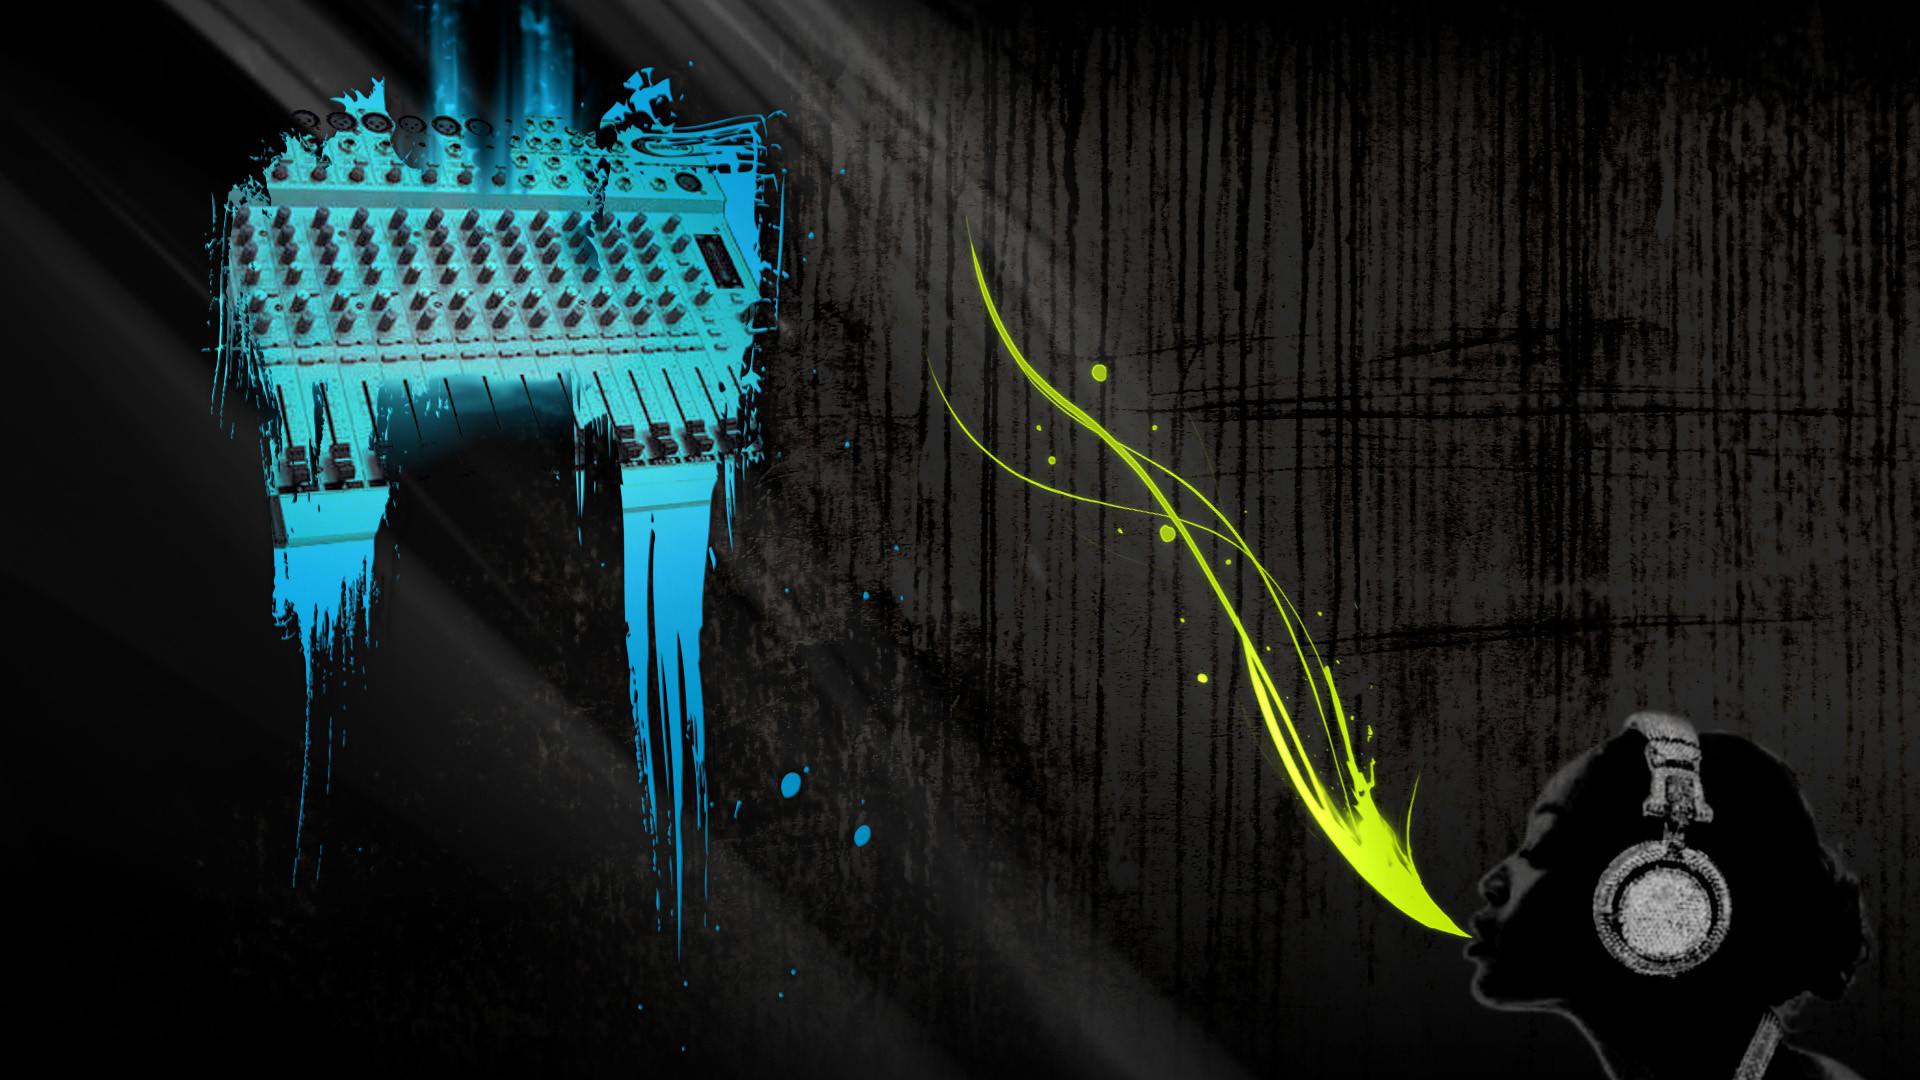 Music Abstract Backgrounds: Abstract Music Wallpaper (64+ Images